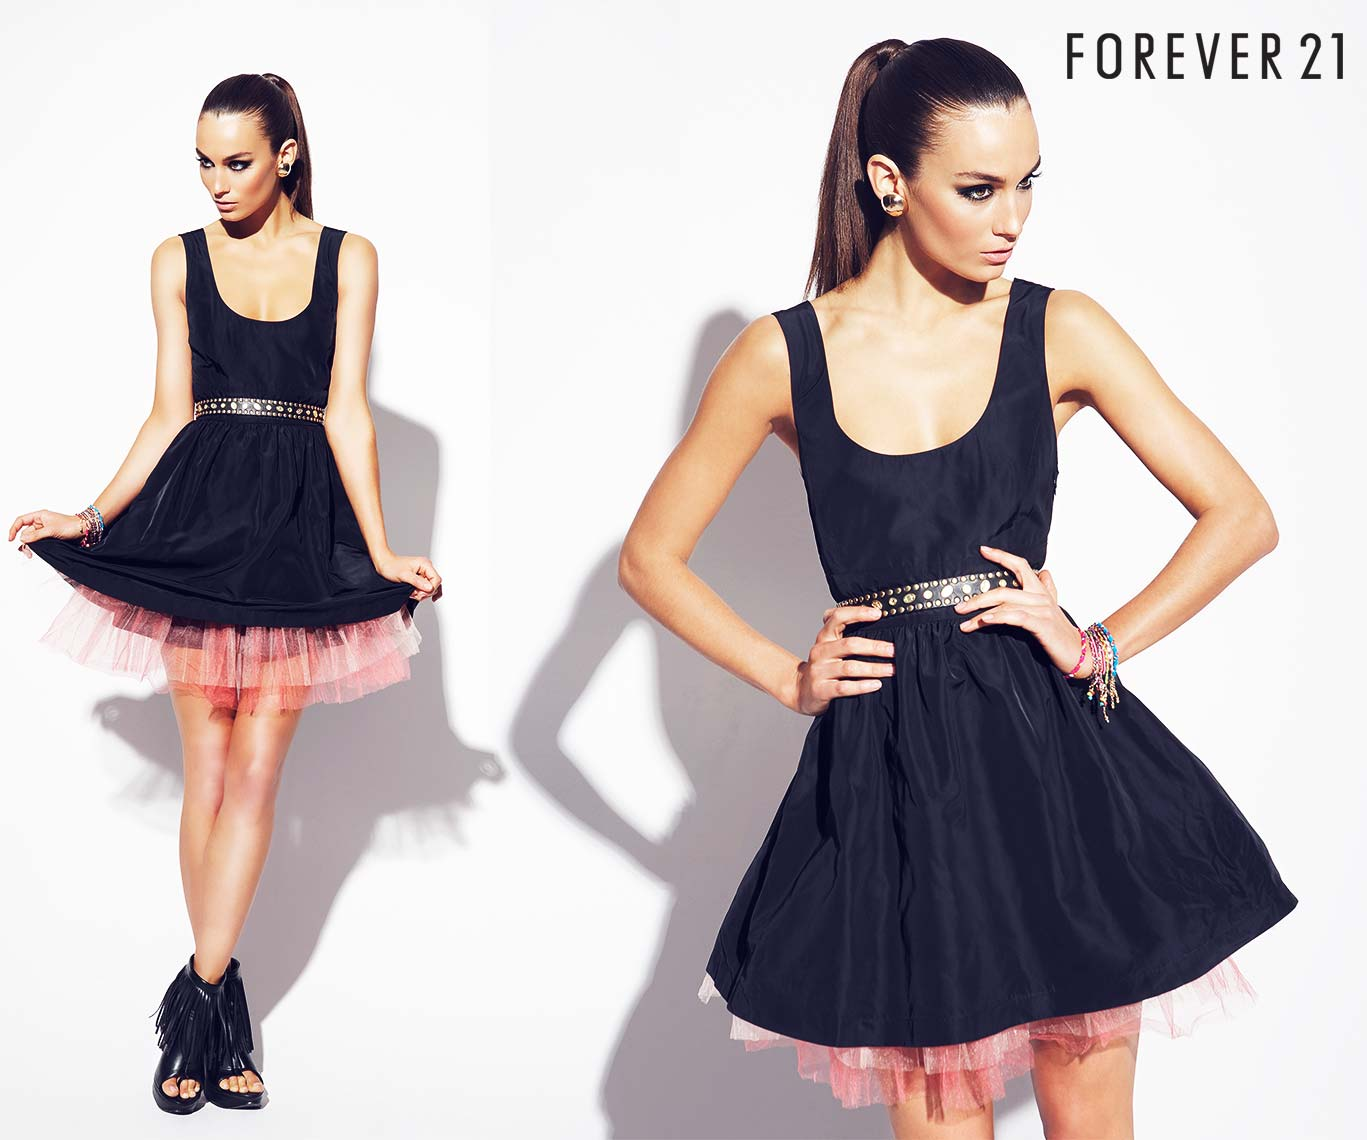 CHRIS-HUNT-FASHION-PHOTOGRAPHY-FOREVER-21-ADVERTISING-STUDIO-0035